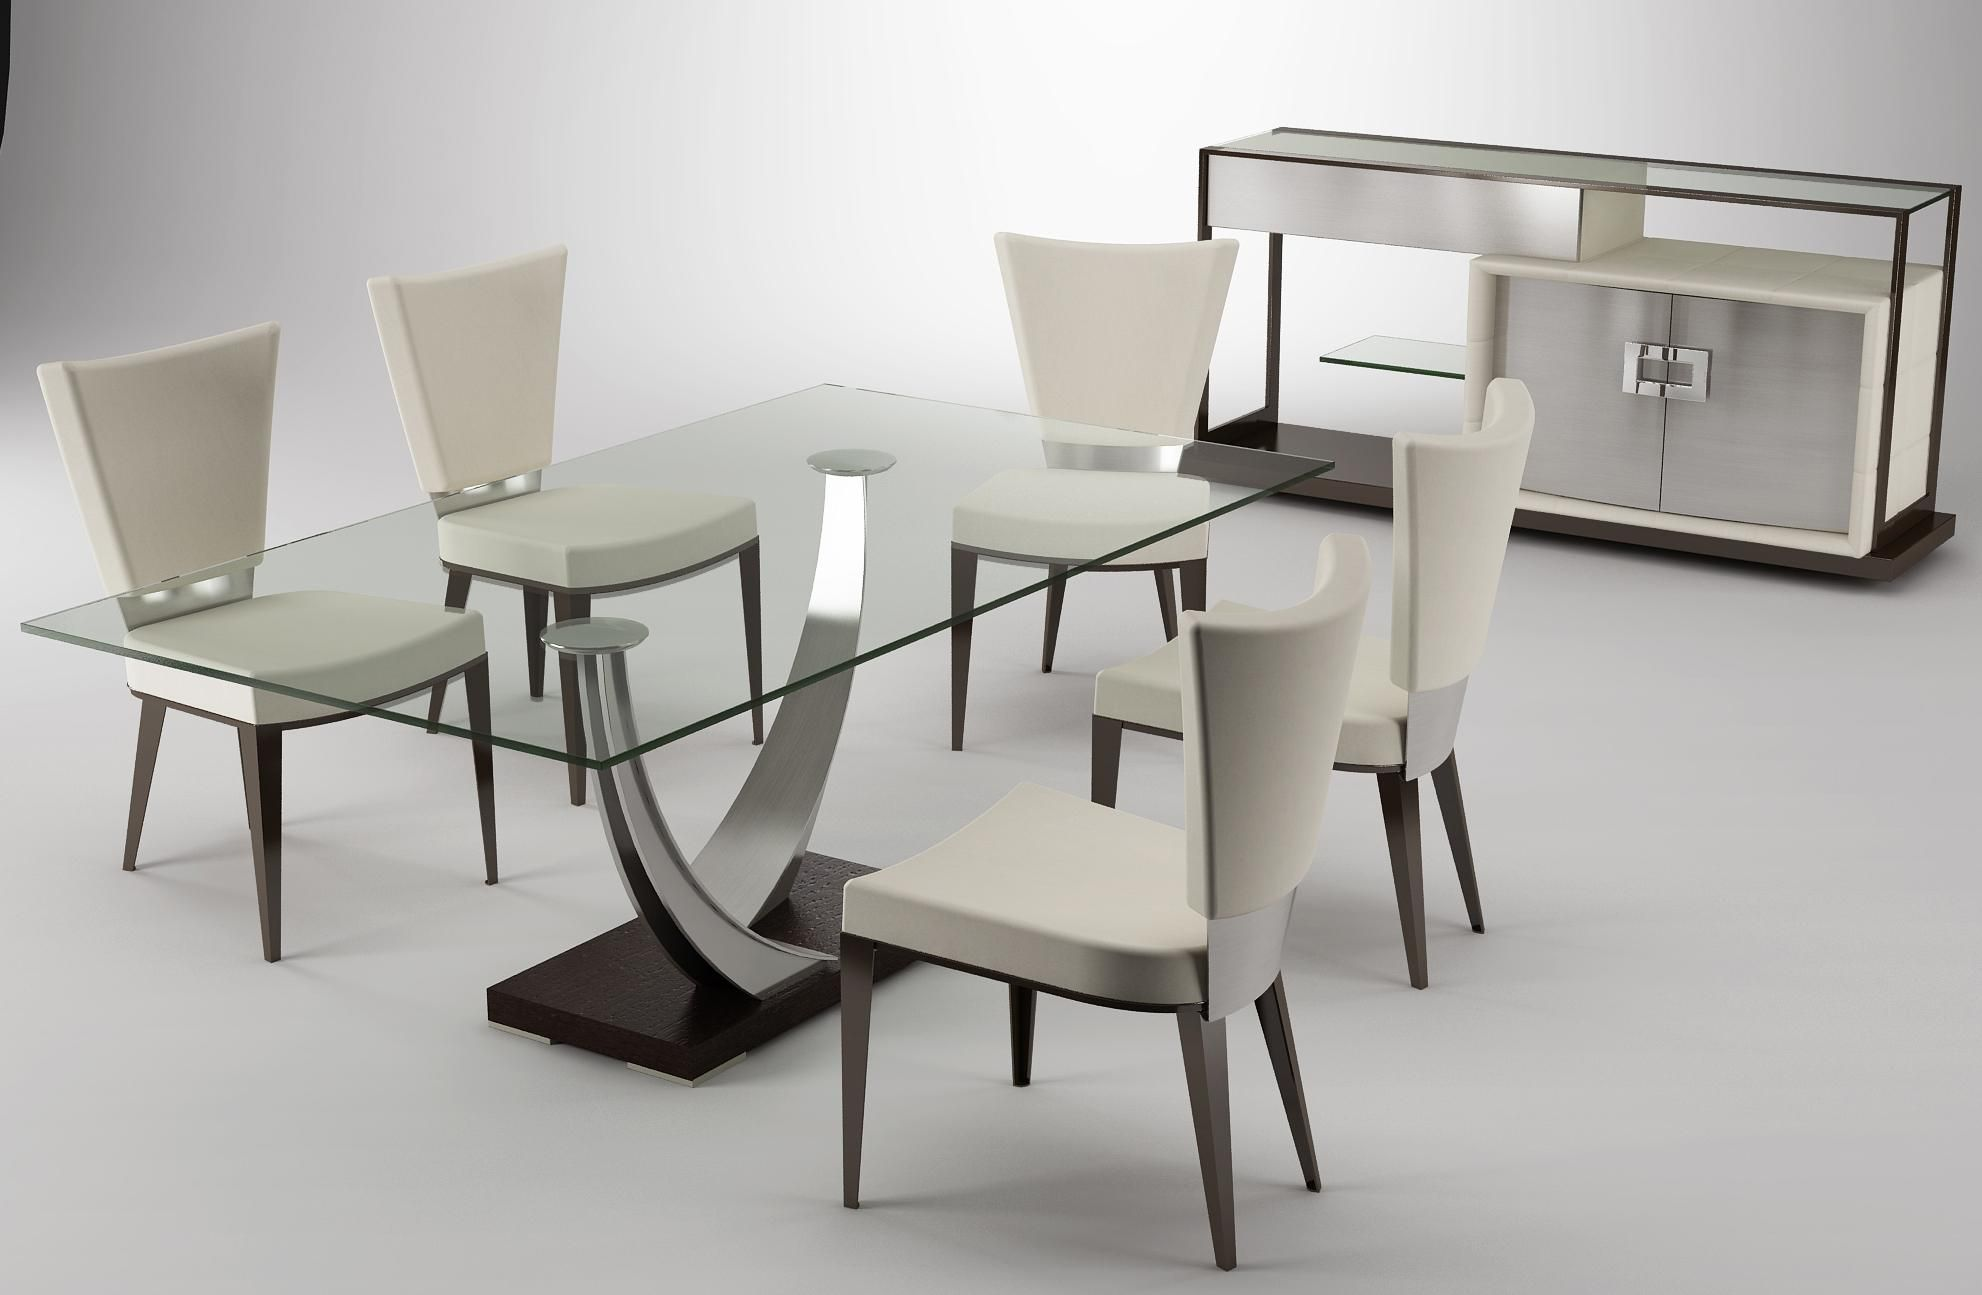 Amazing modern stylish dining room table set designs elite for Modern round dining room tables